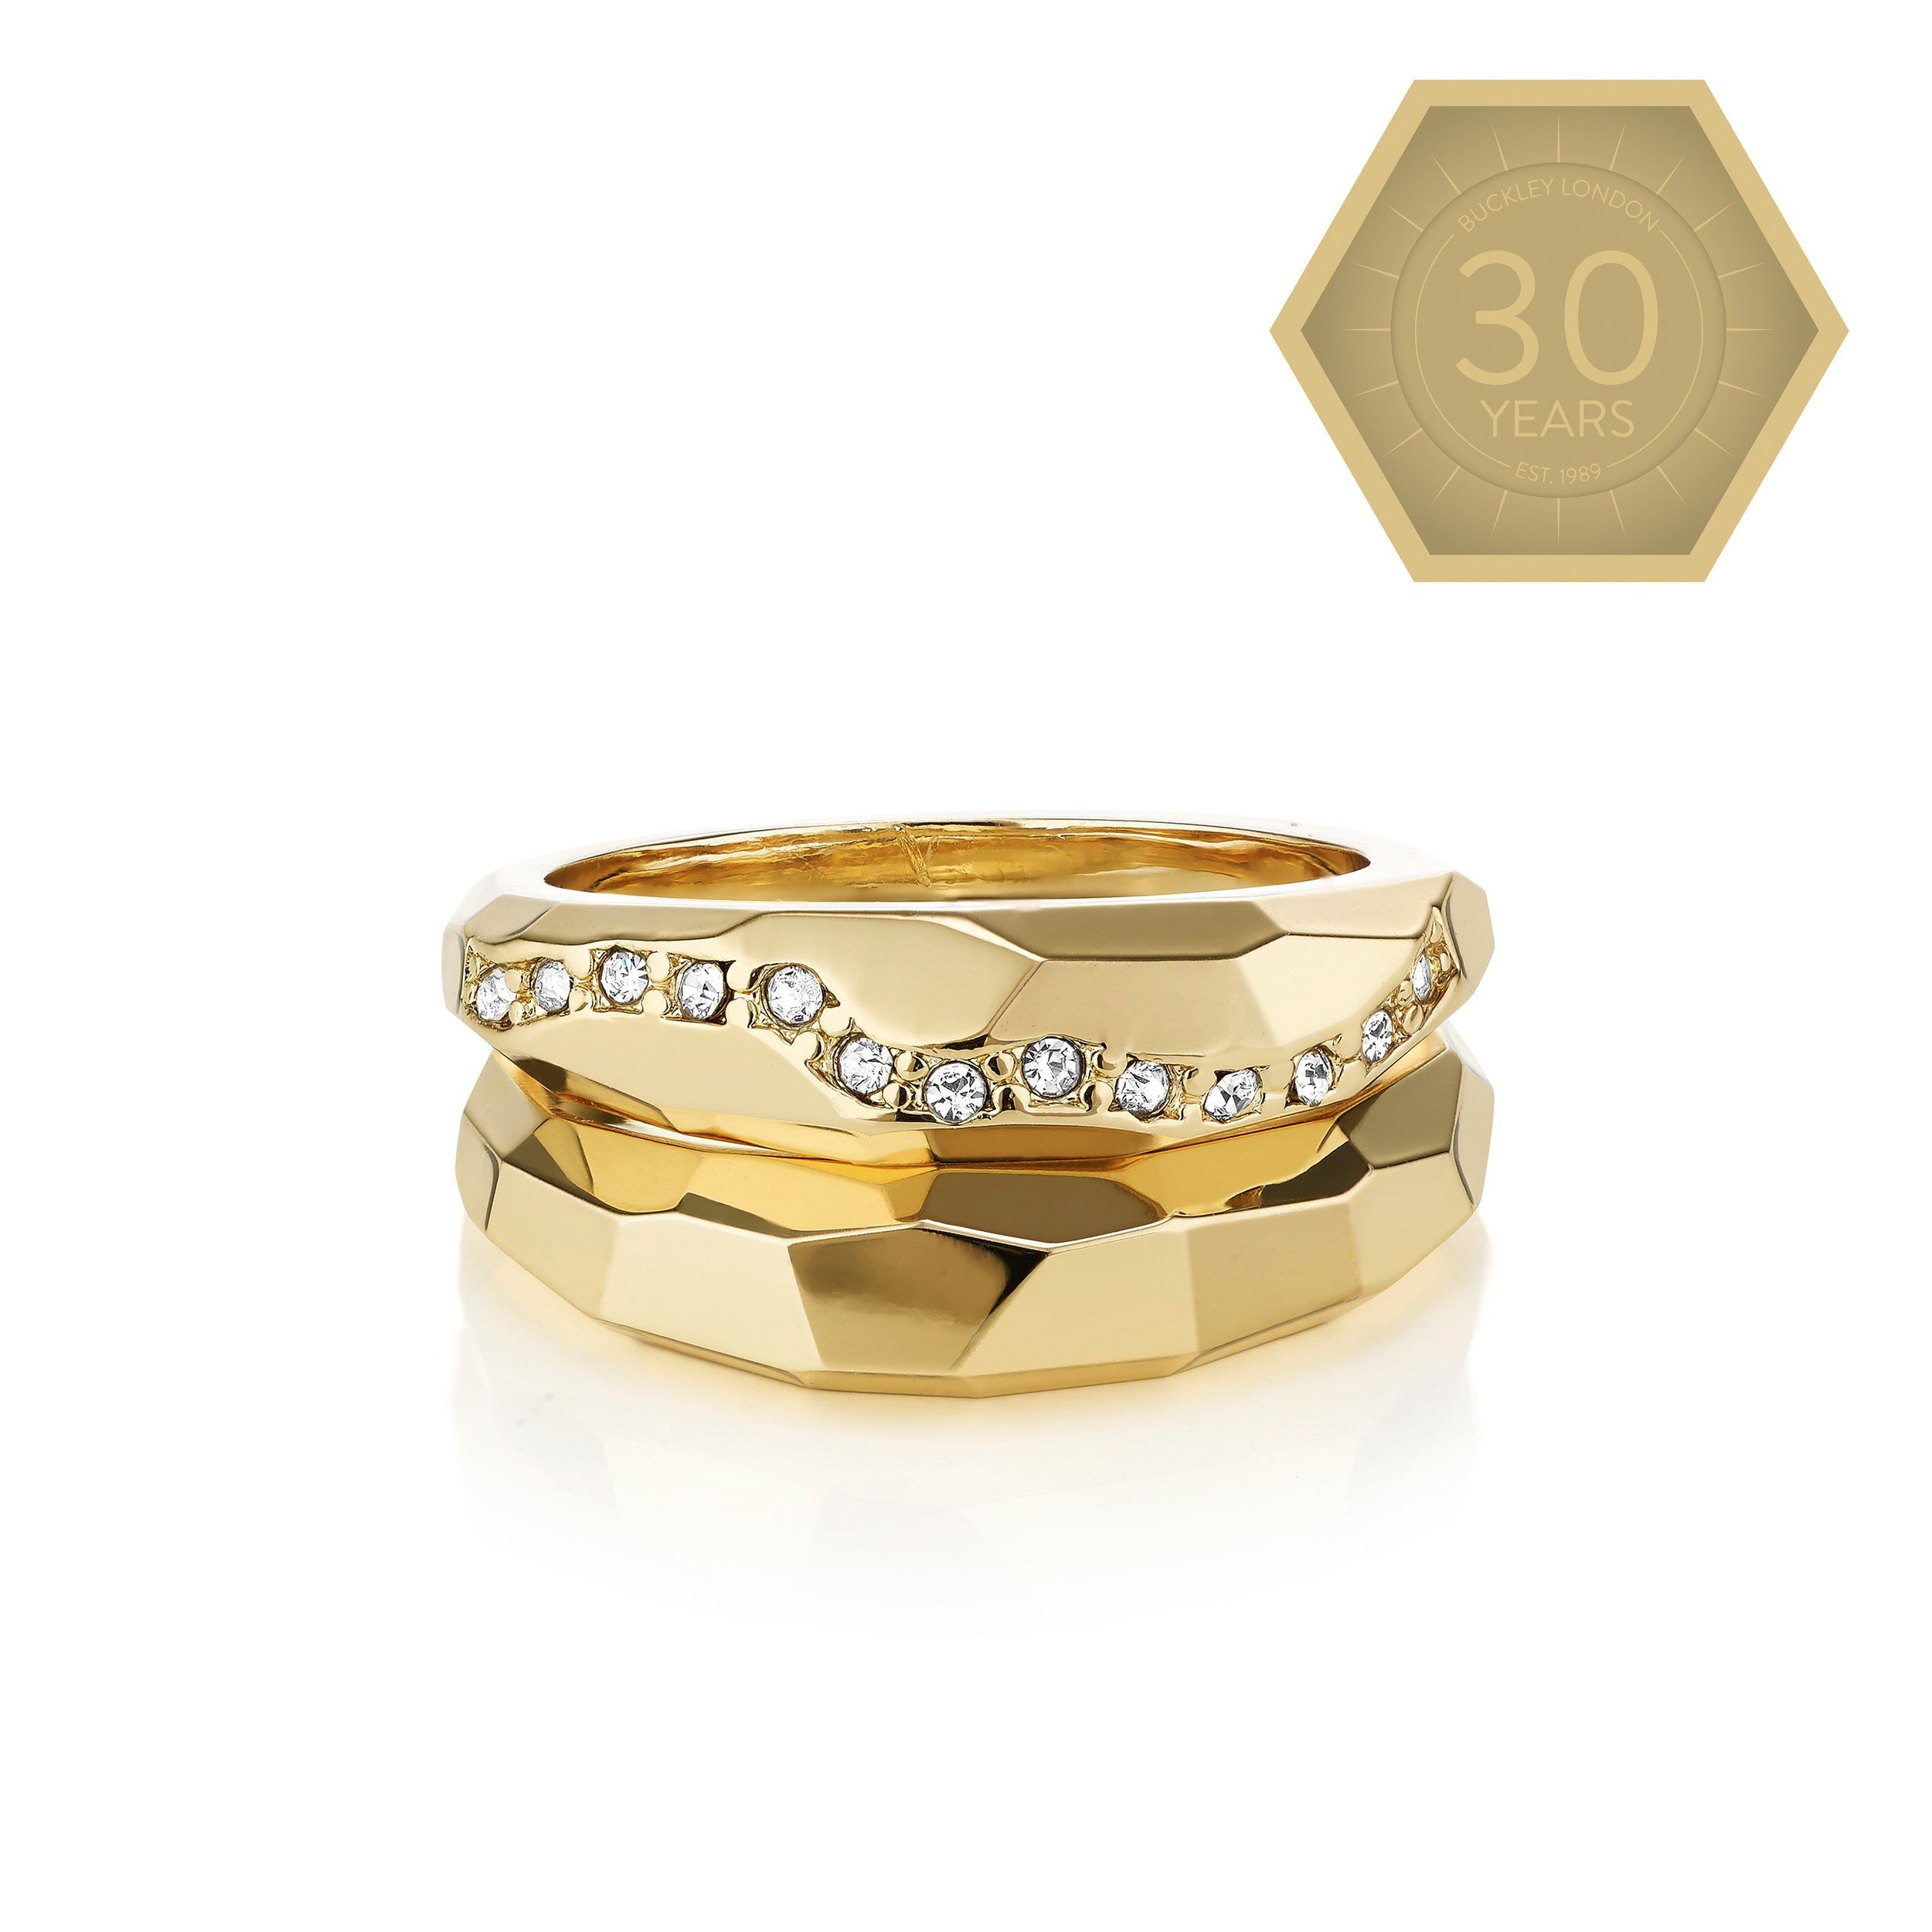 Legacy Stacker Rings Intended For Best And Newest Multifaceted Rings (View 12 of 25)